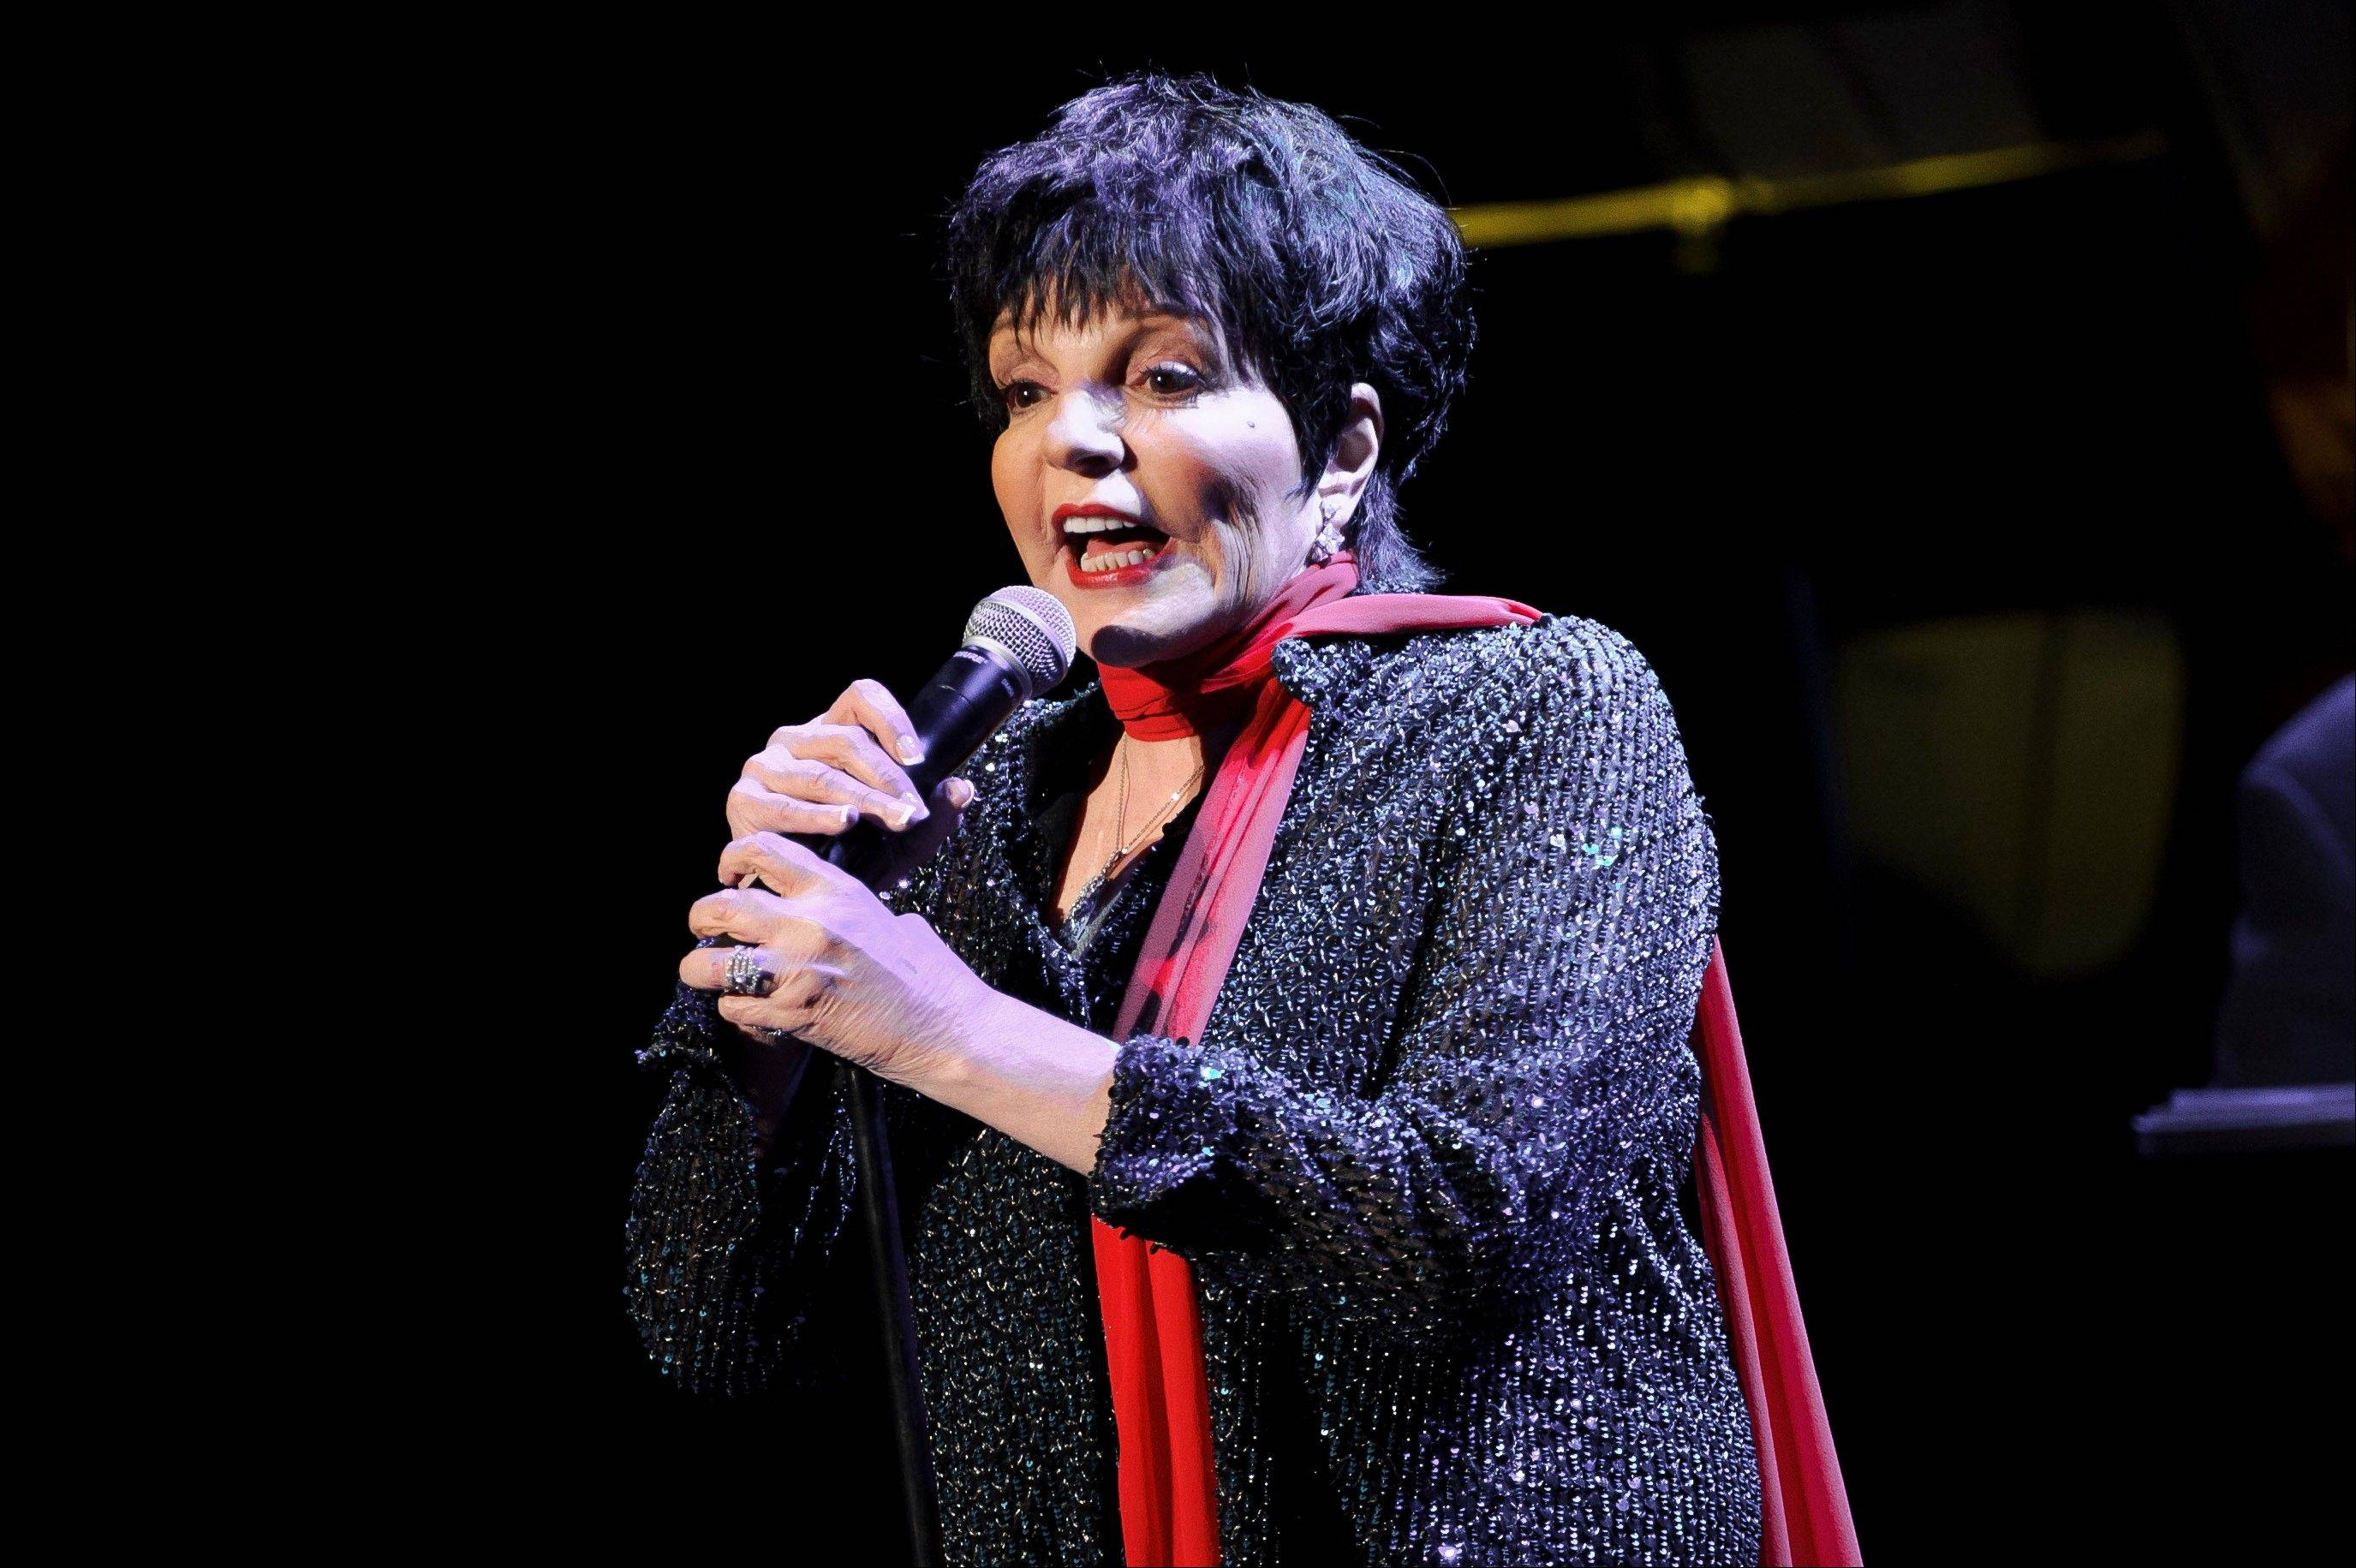 Liza Minnelli performed with a broken wrist at a benefit concert Monday night, Oct. 14, 2013, in New York. Minnelli broke her wrist in three places while rehearsing at home Sunday night.